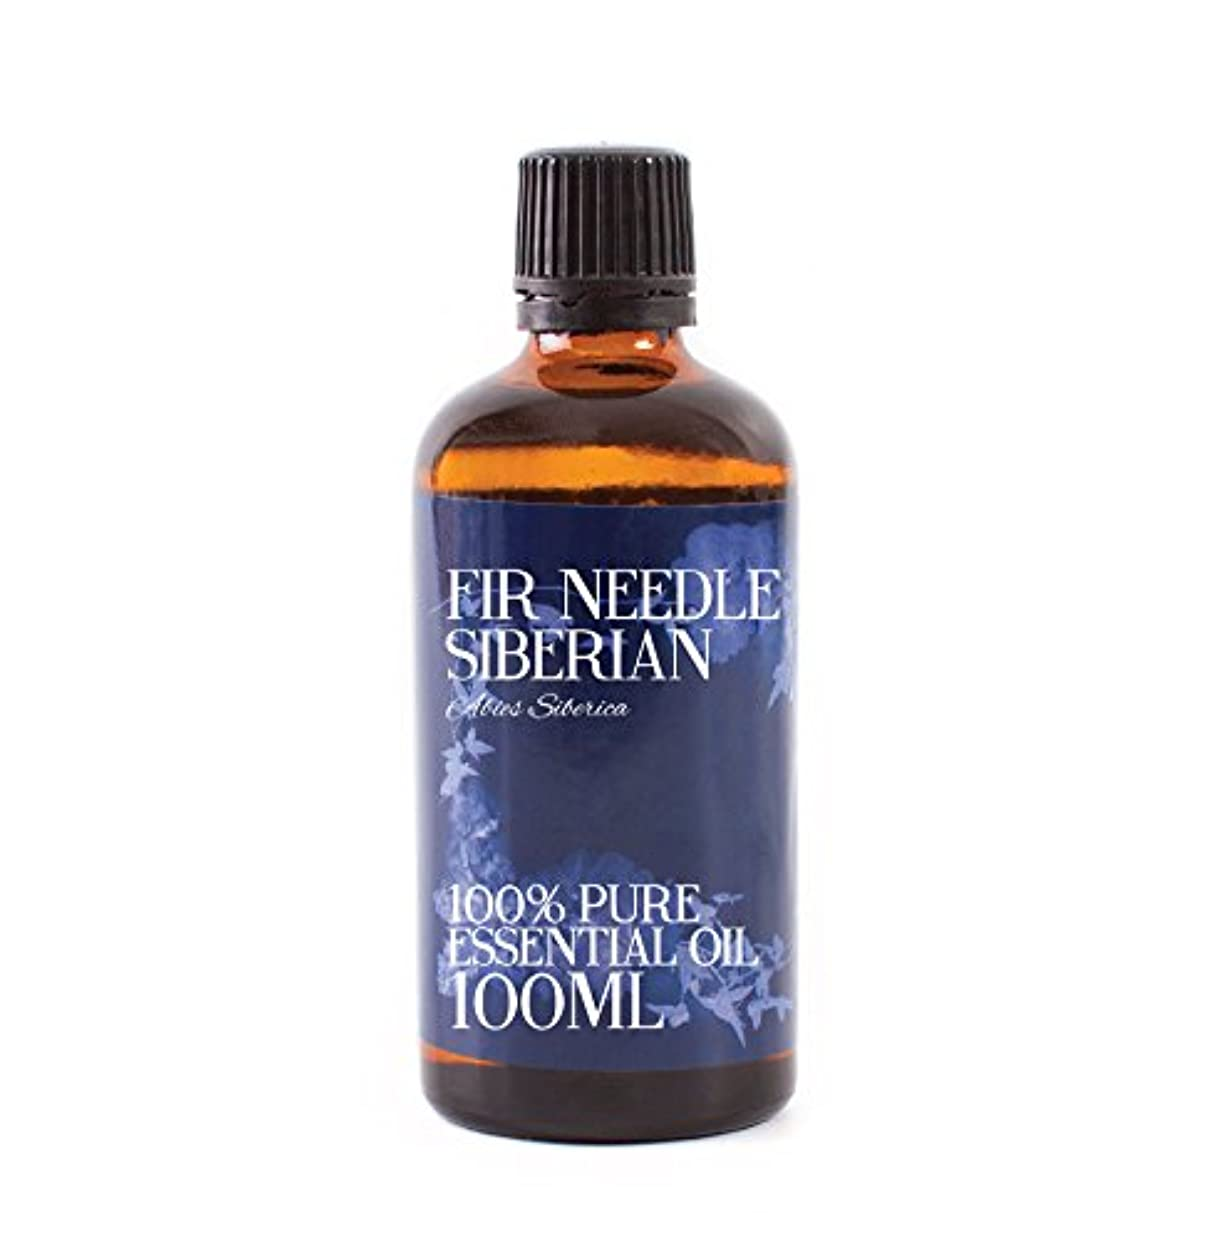 Mystic Moments | Fir Needle Siberian Essential Oil - 100ml - 100% Pure